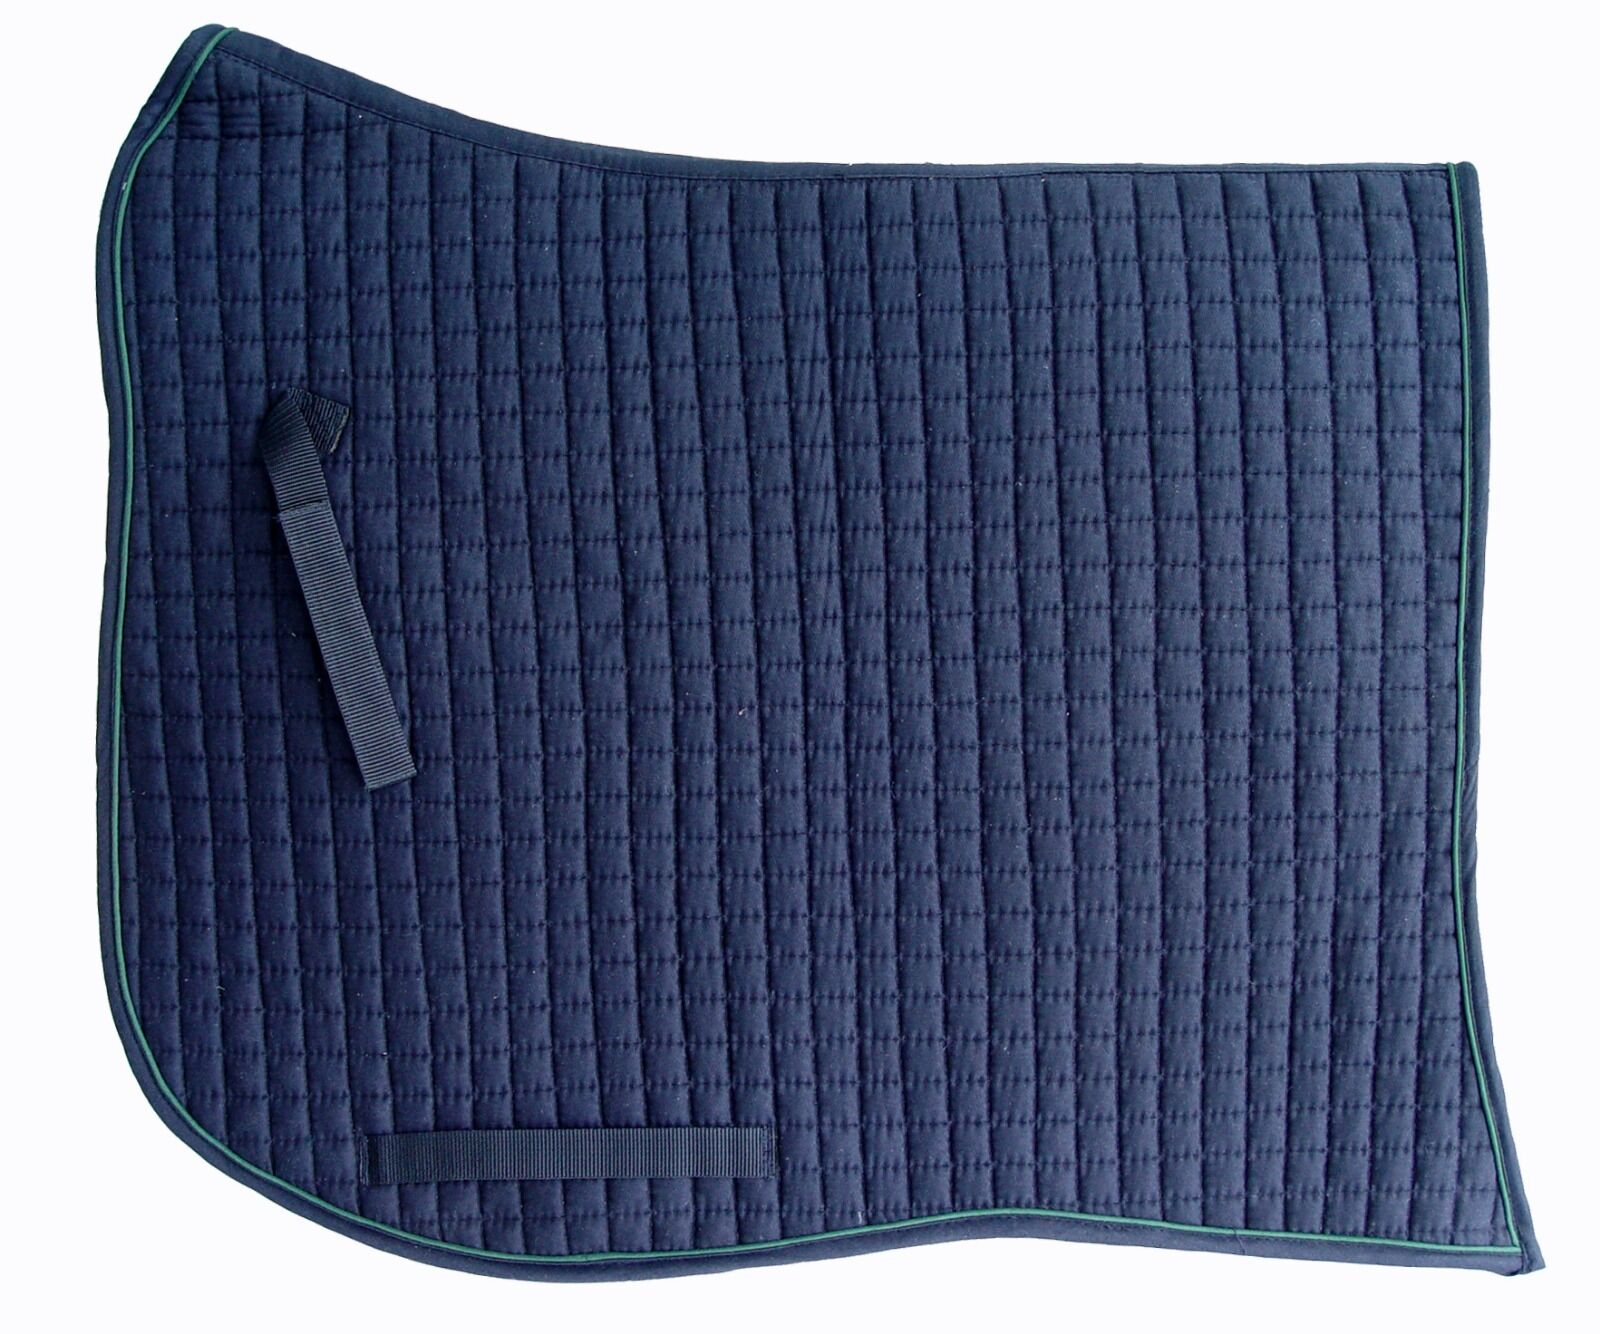 PRI Dressage Pad  Swan-tail, Equu-Felt Cotton Quilt, Wither Relief, Navy Hunter